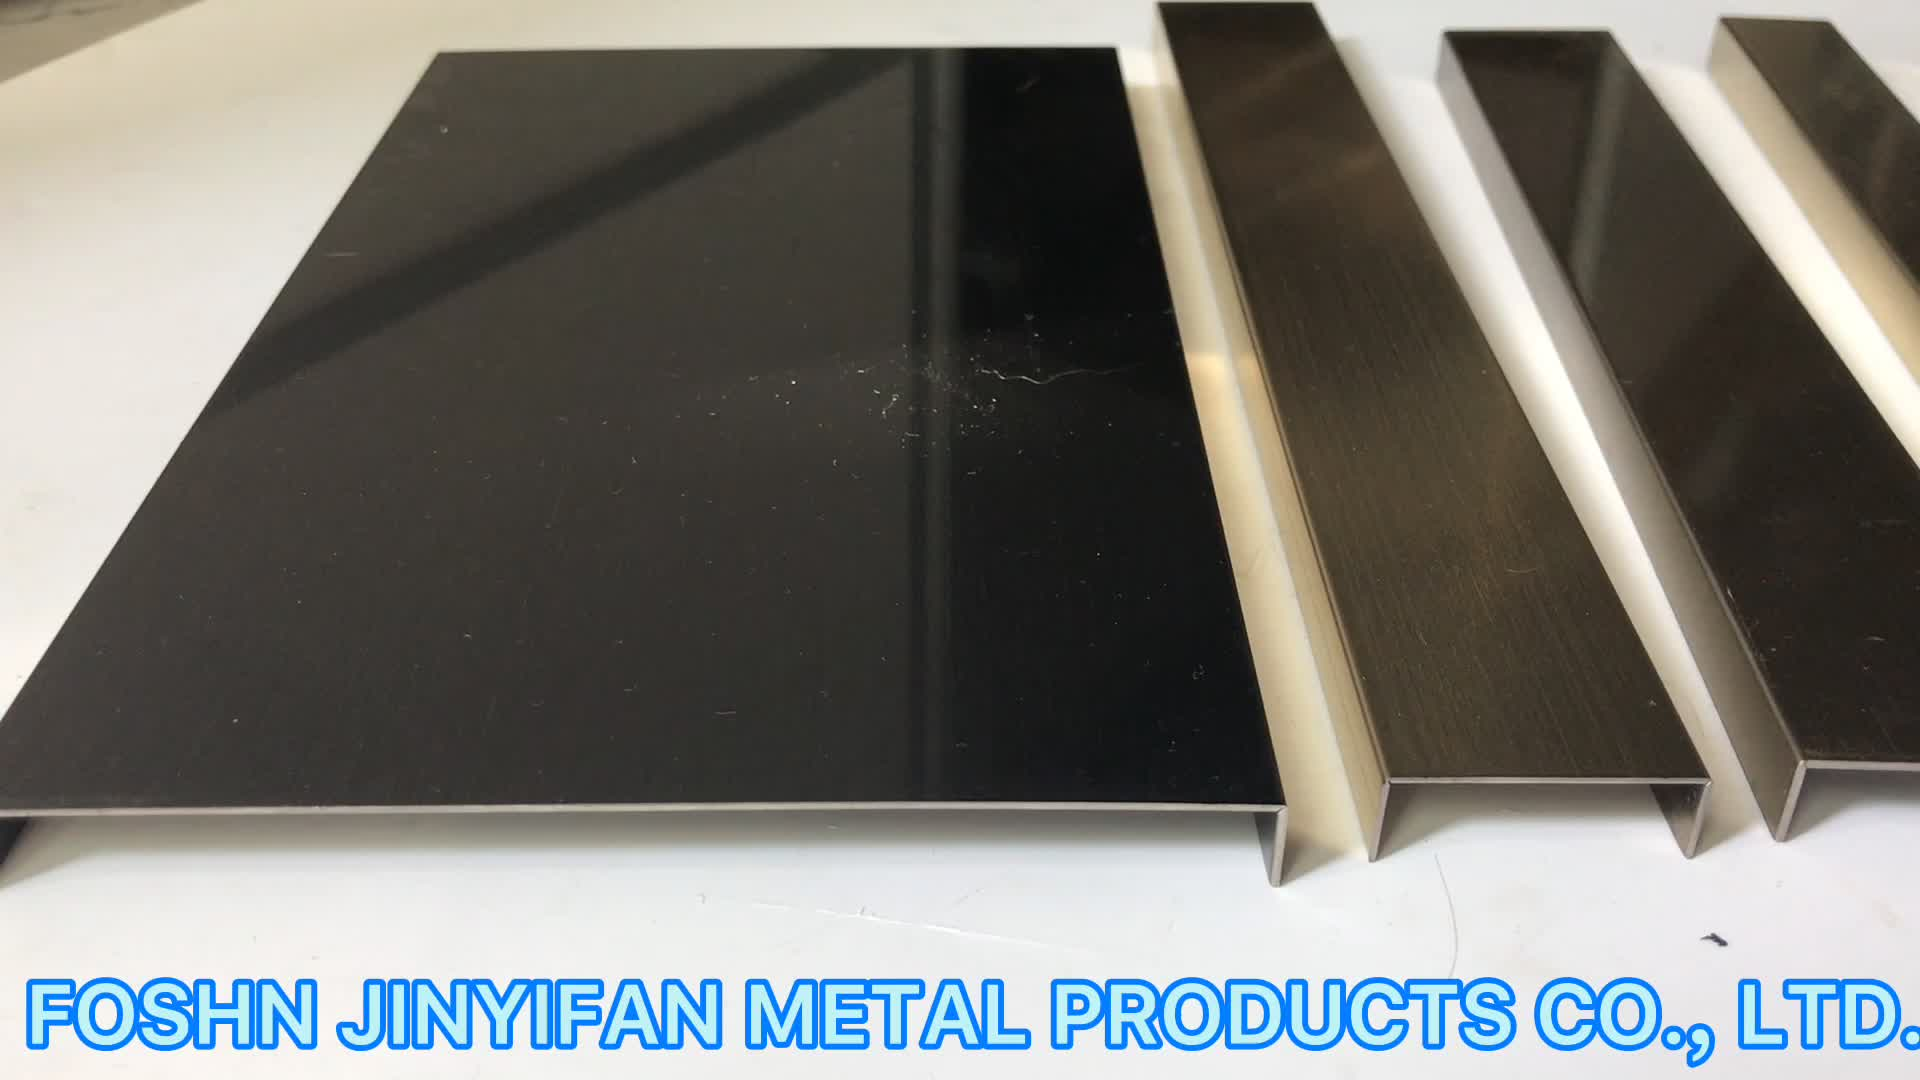 jyf10020 China Custom Product Metal Stamping Brushed Stainless Steel Tile Trim For Hotel Wall Panel